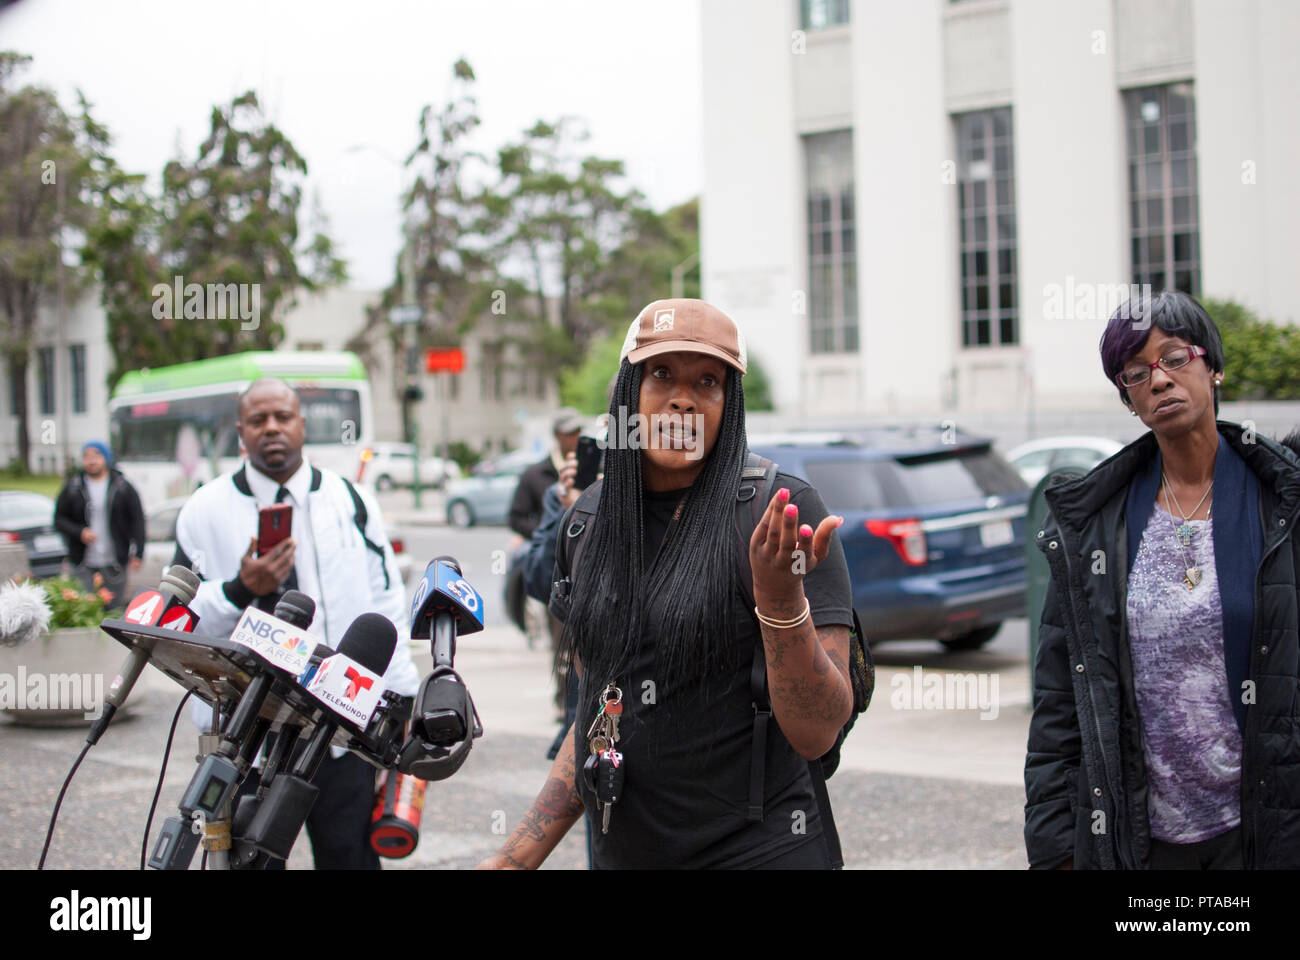 Eliza Anderson, a former tenant at 2551 San Pablo Ave. where a fire killed four people in 2017, discusses a lawsuit at a press conference. Stock Photo